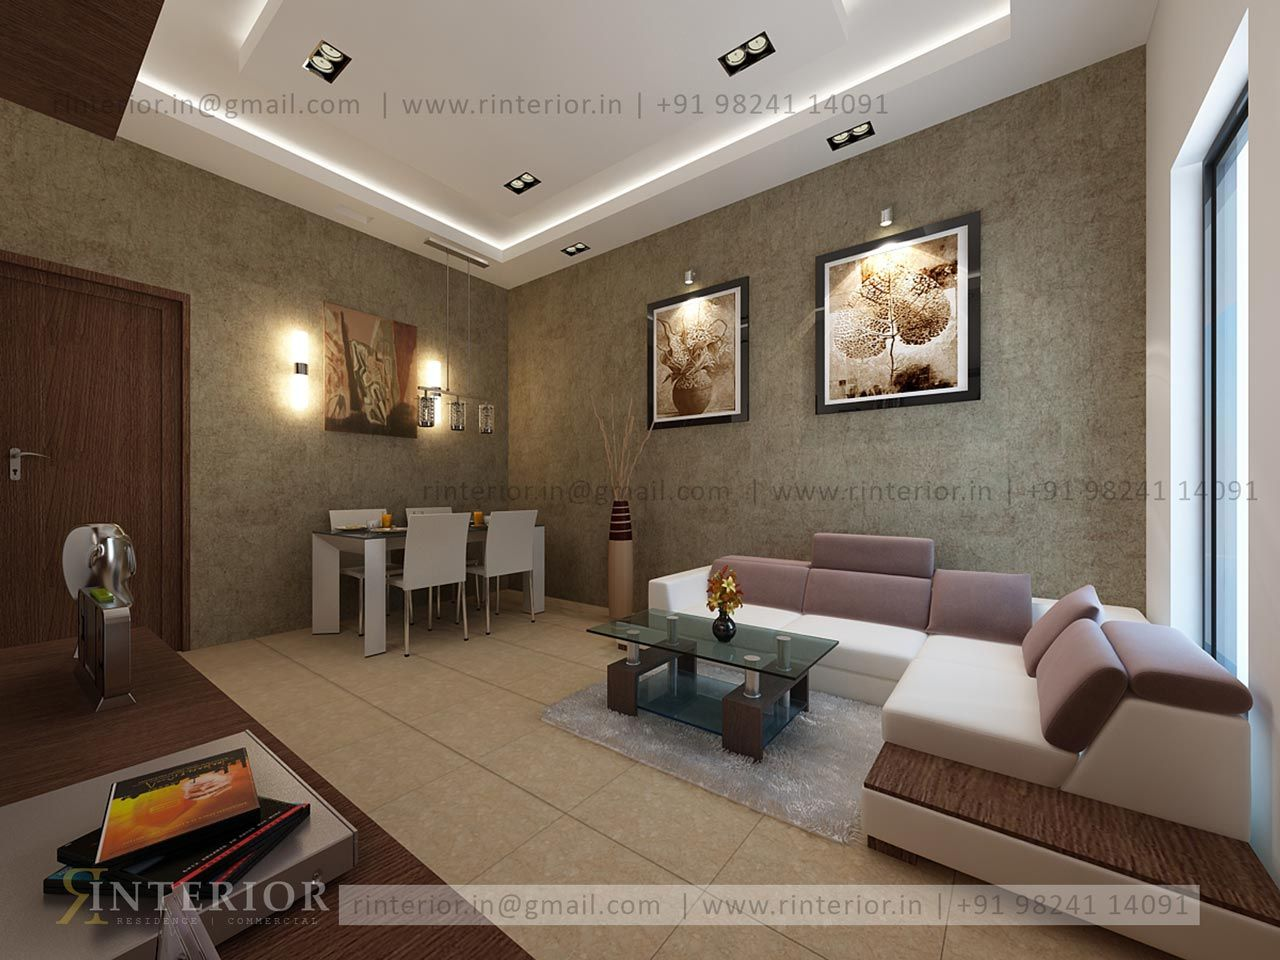 Beautifully House Design by Rinterior in Ahmedabad